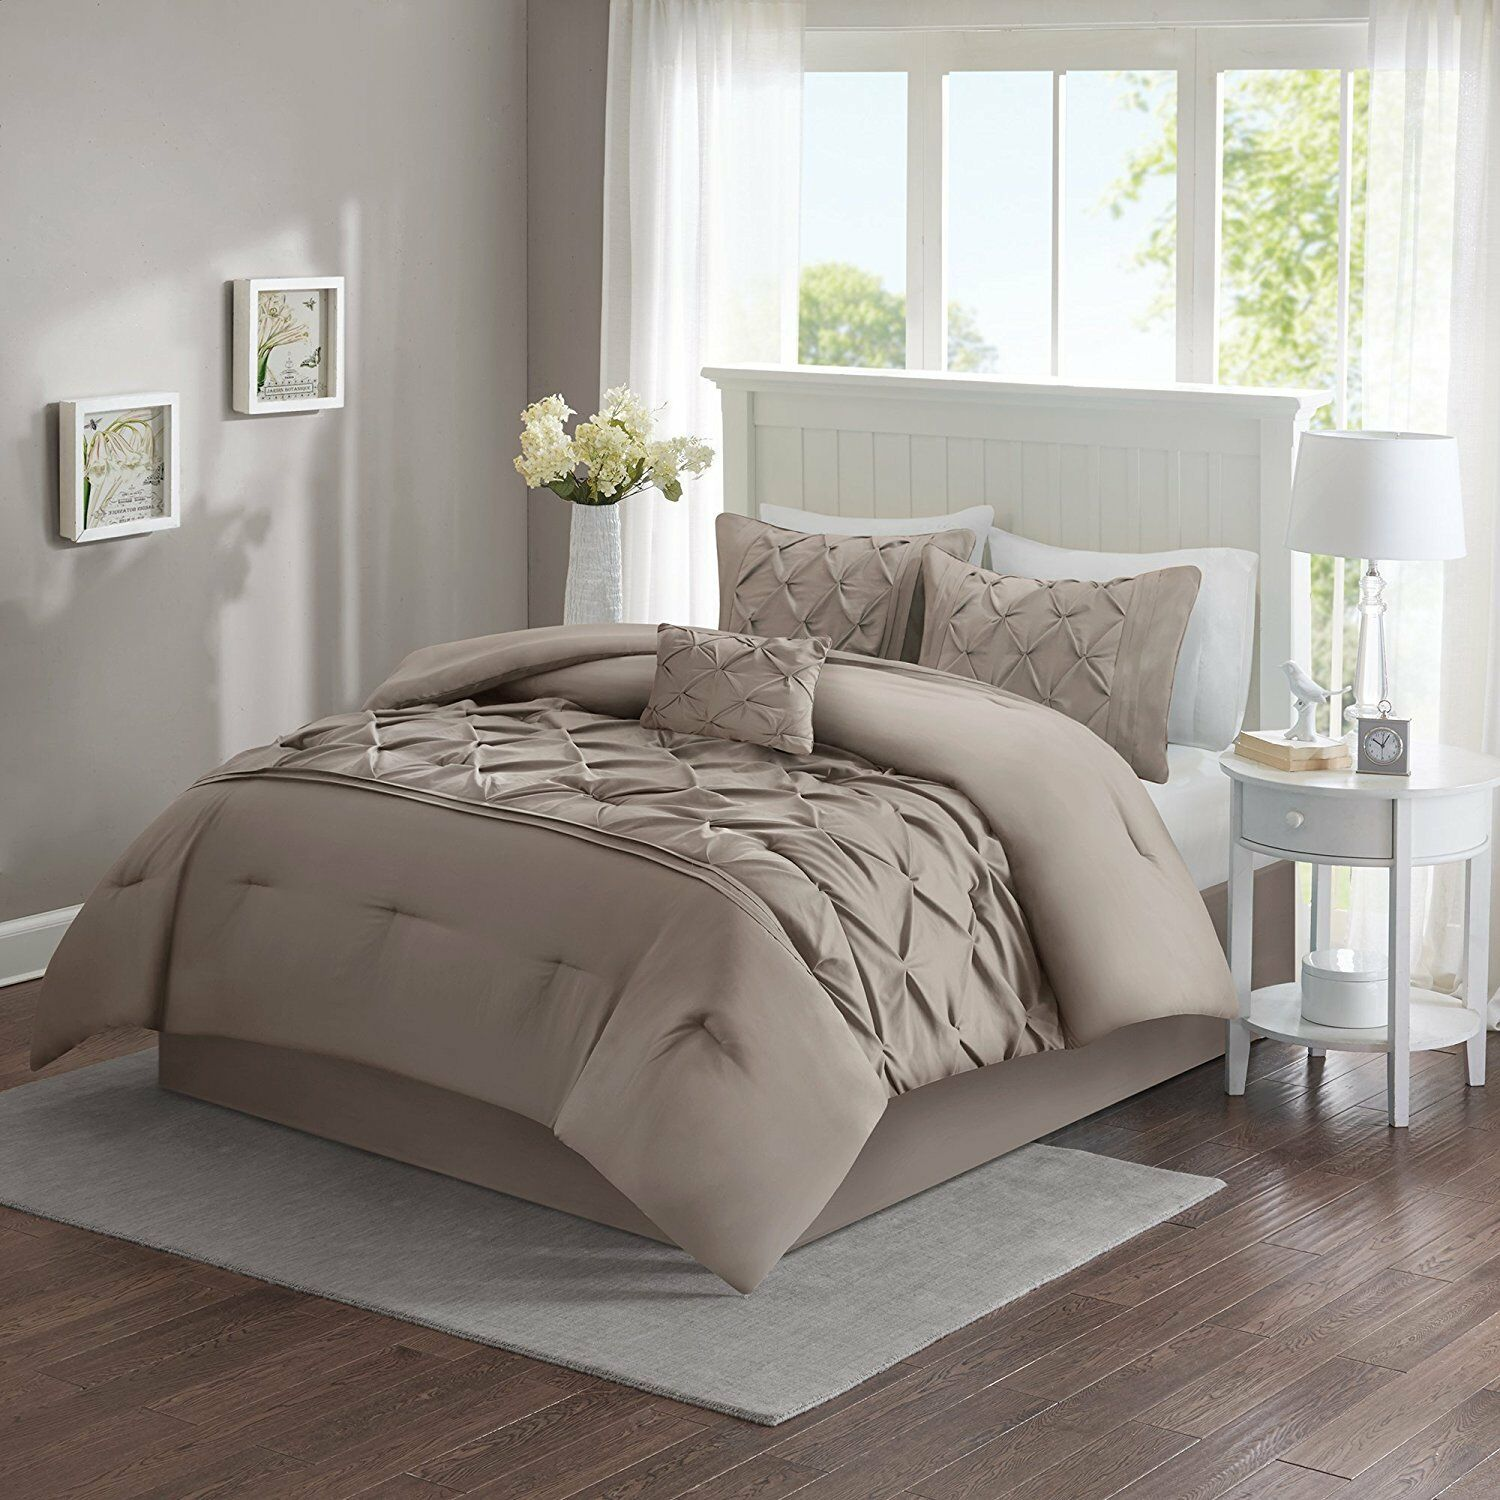 Cavoy Comforter Sets Piece Tufted Pattern Taupe King Größe, Includes Comforter,